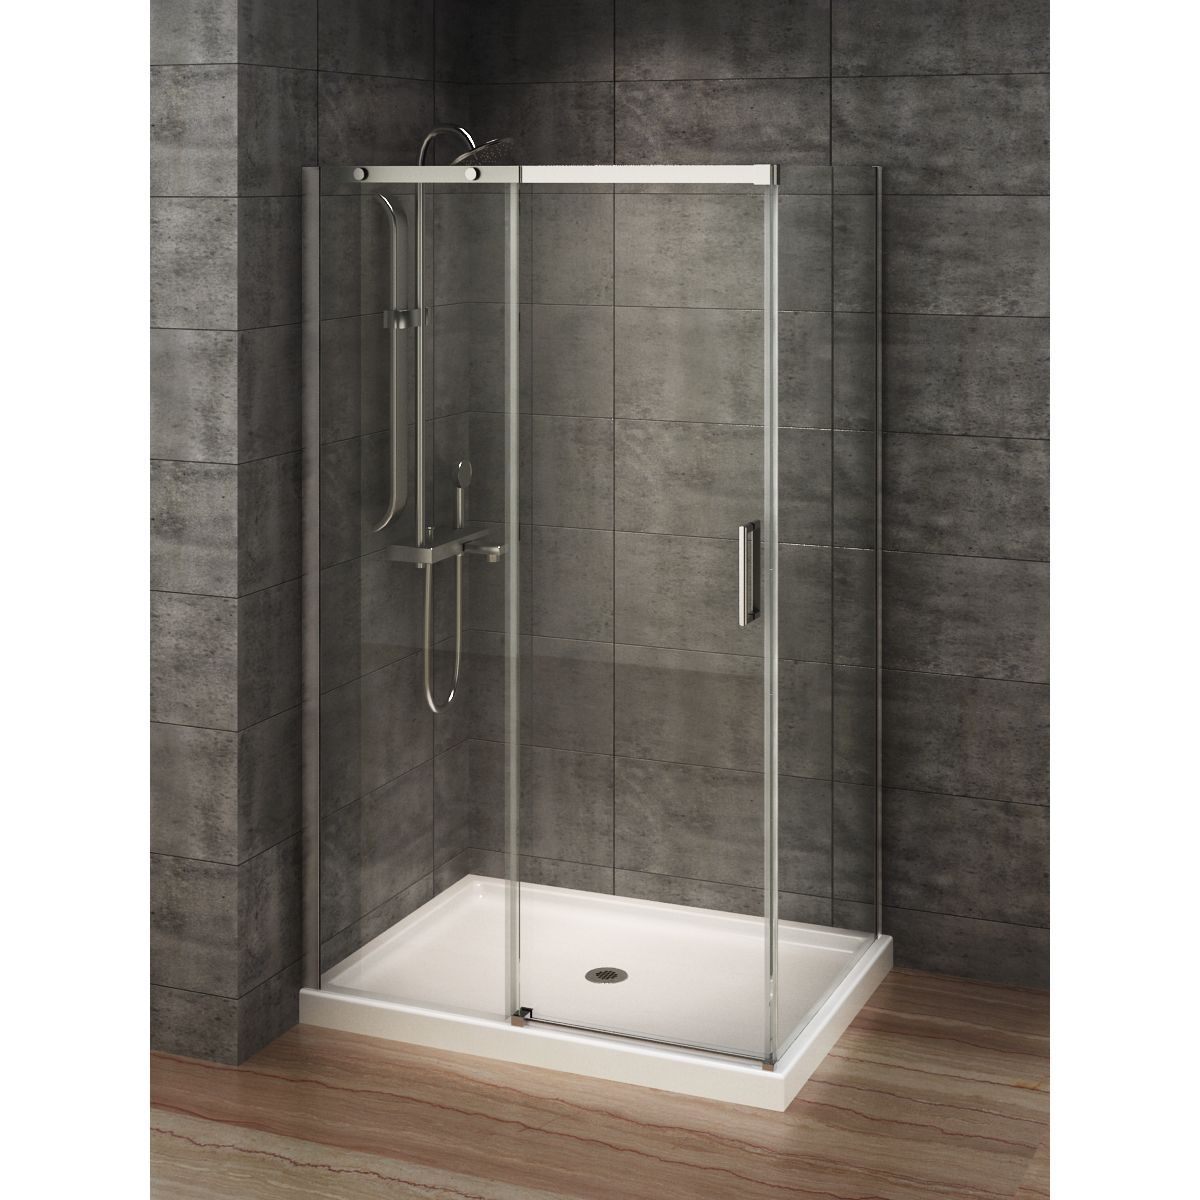 32 inch corner shower stall kits. Berlin Glass 48 inch x 32 Rectangular Corner Shower Stall